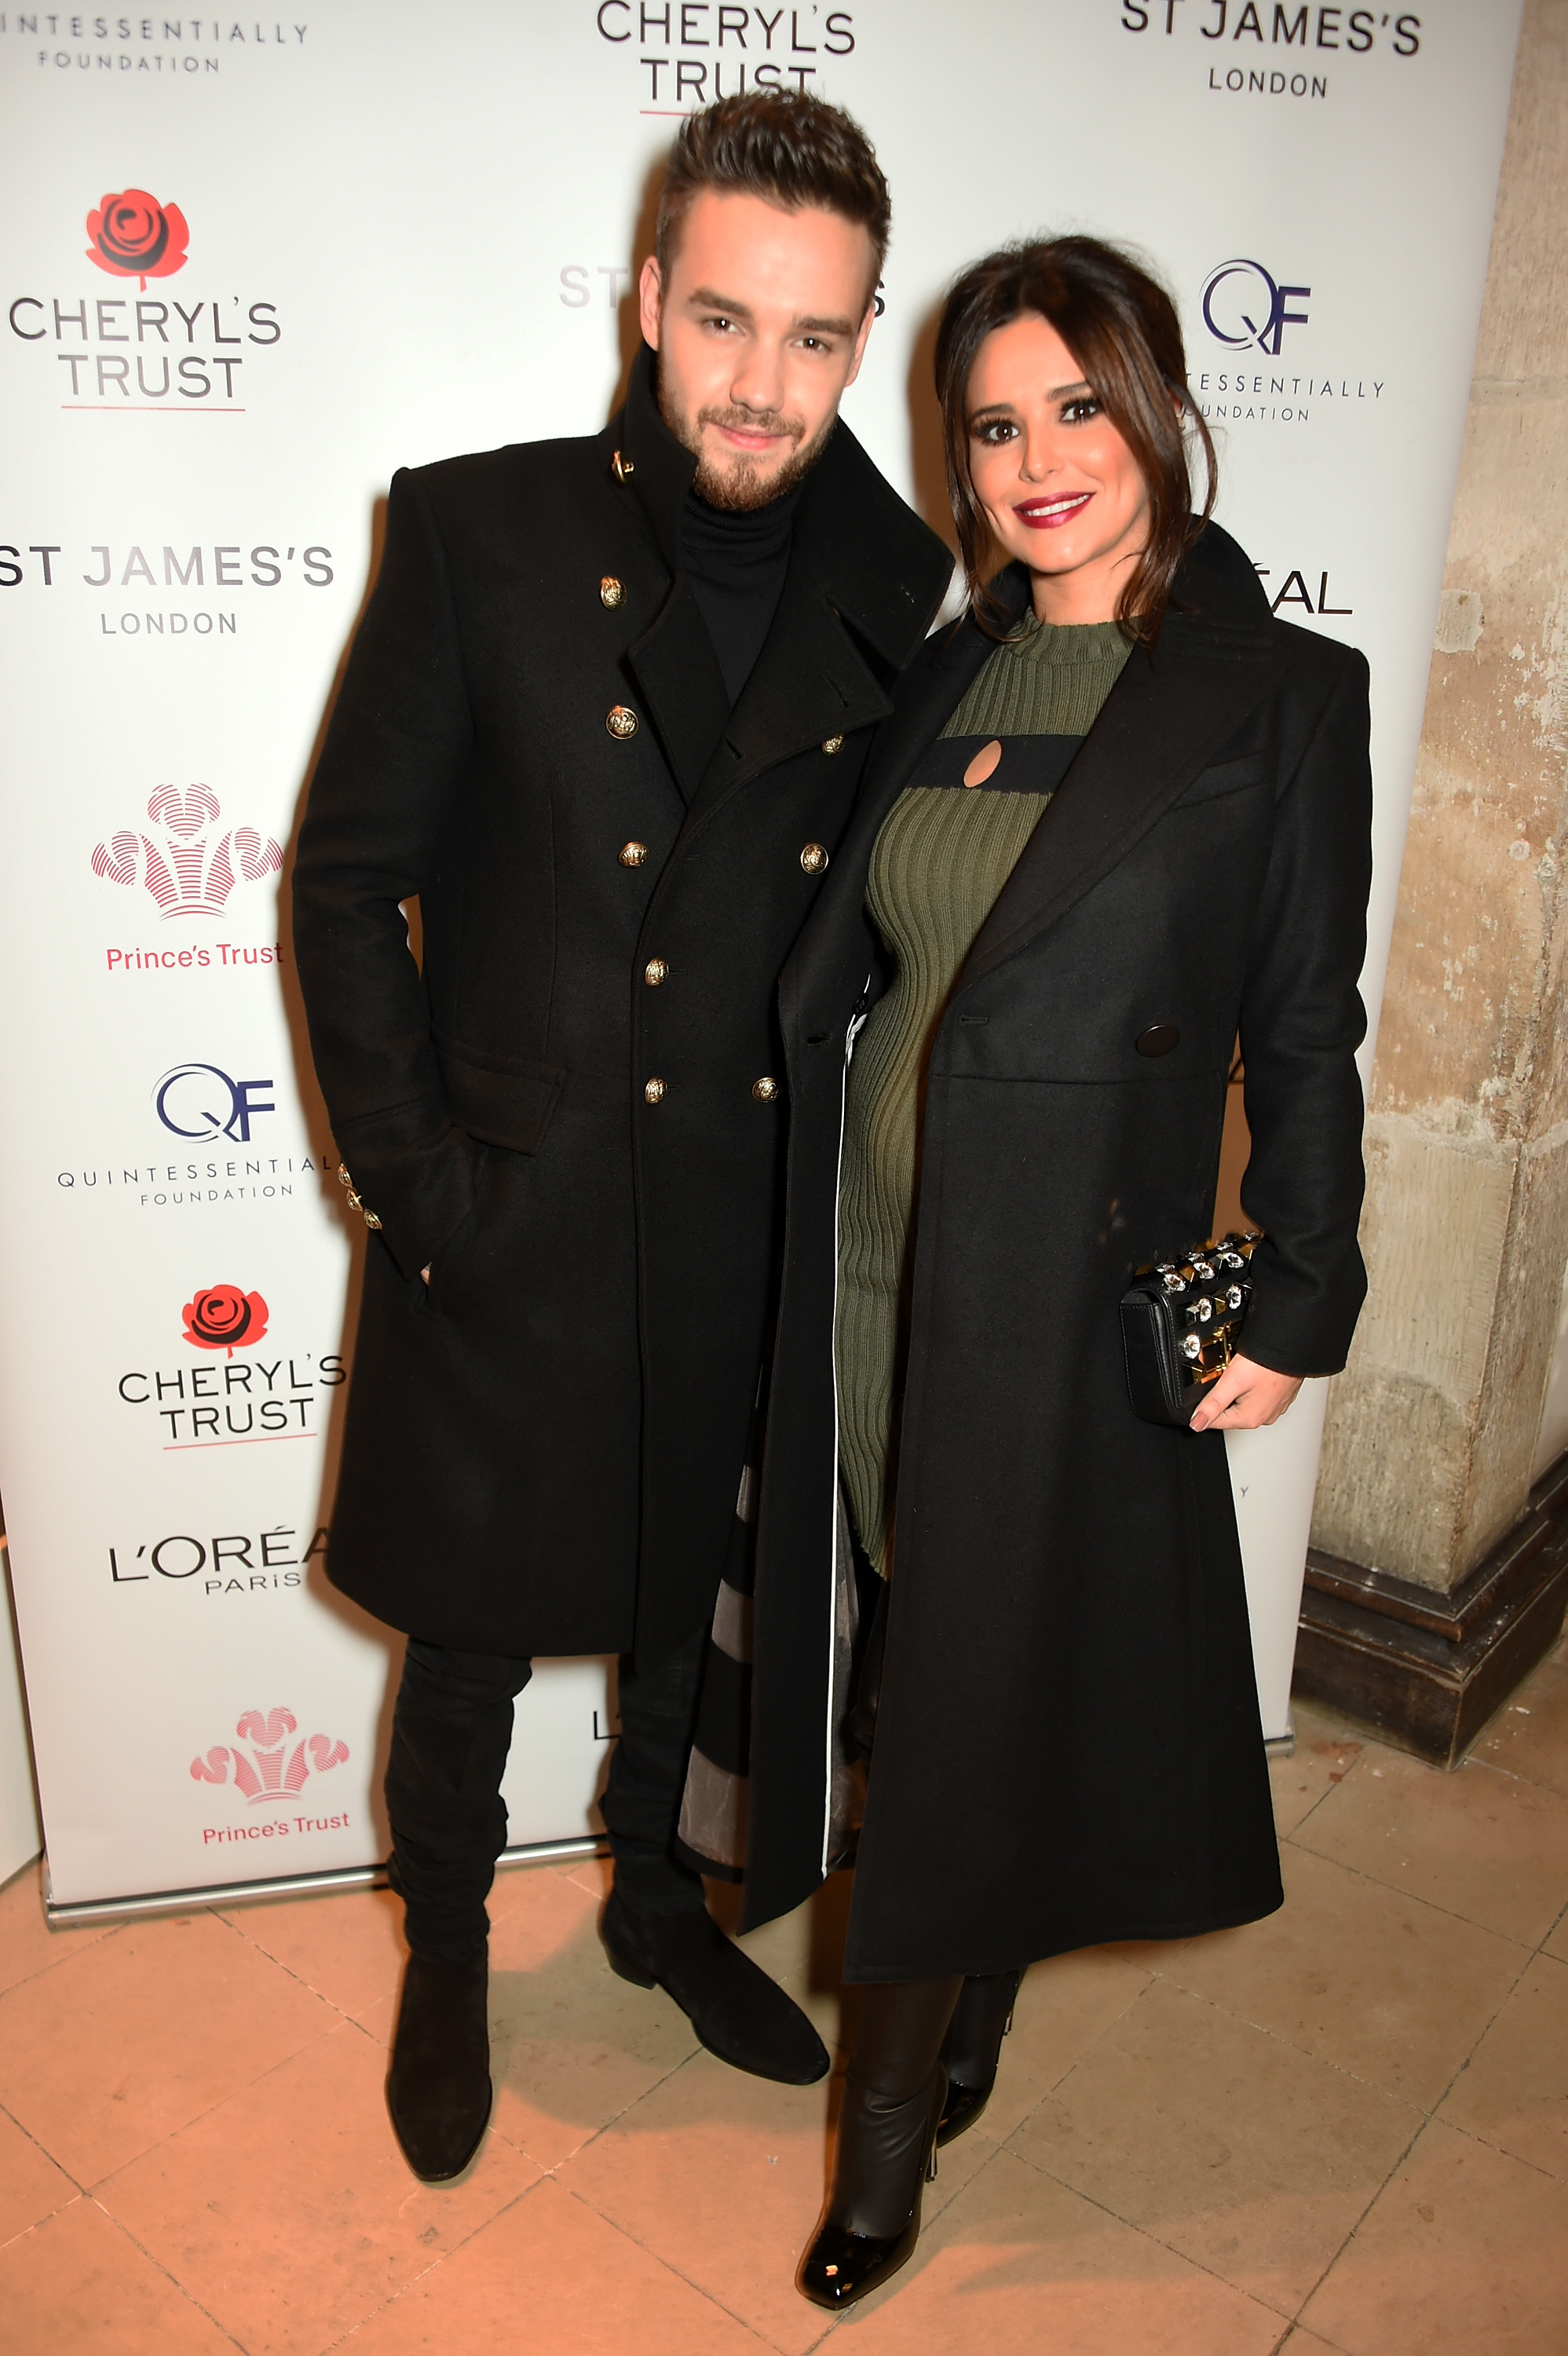 Liam and Cheryl at St James's London carol concert